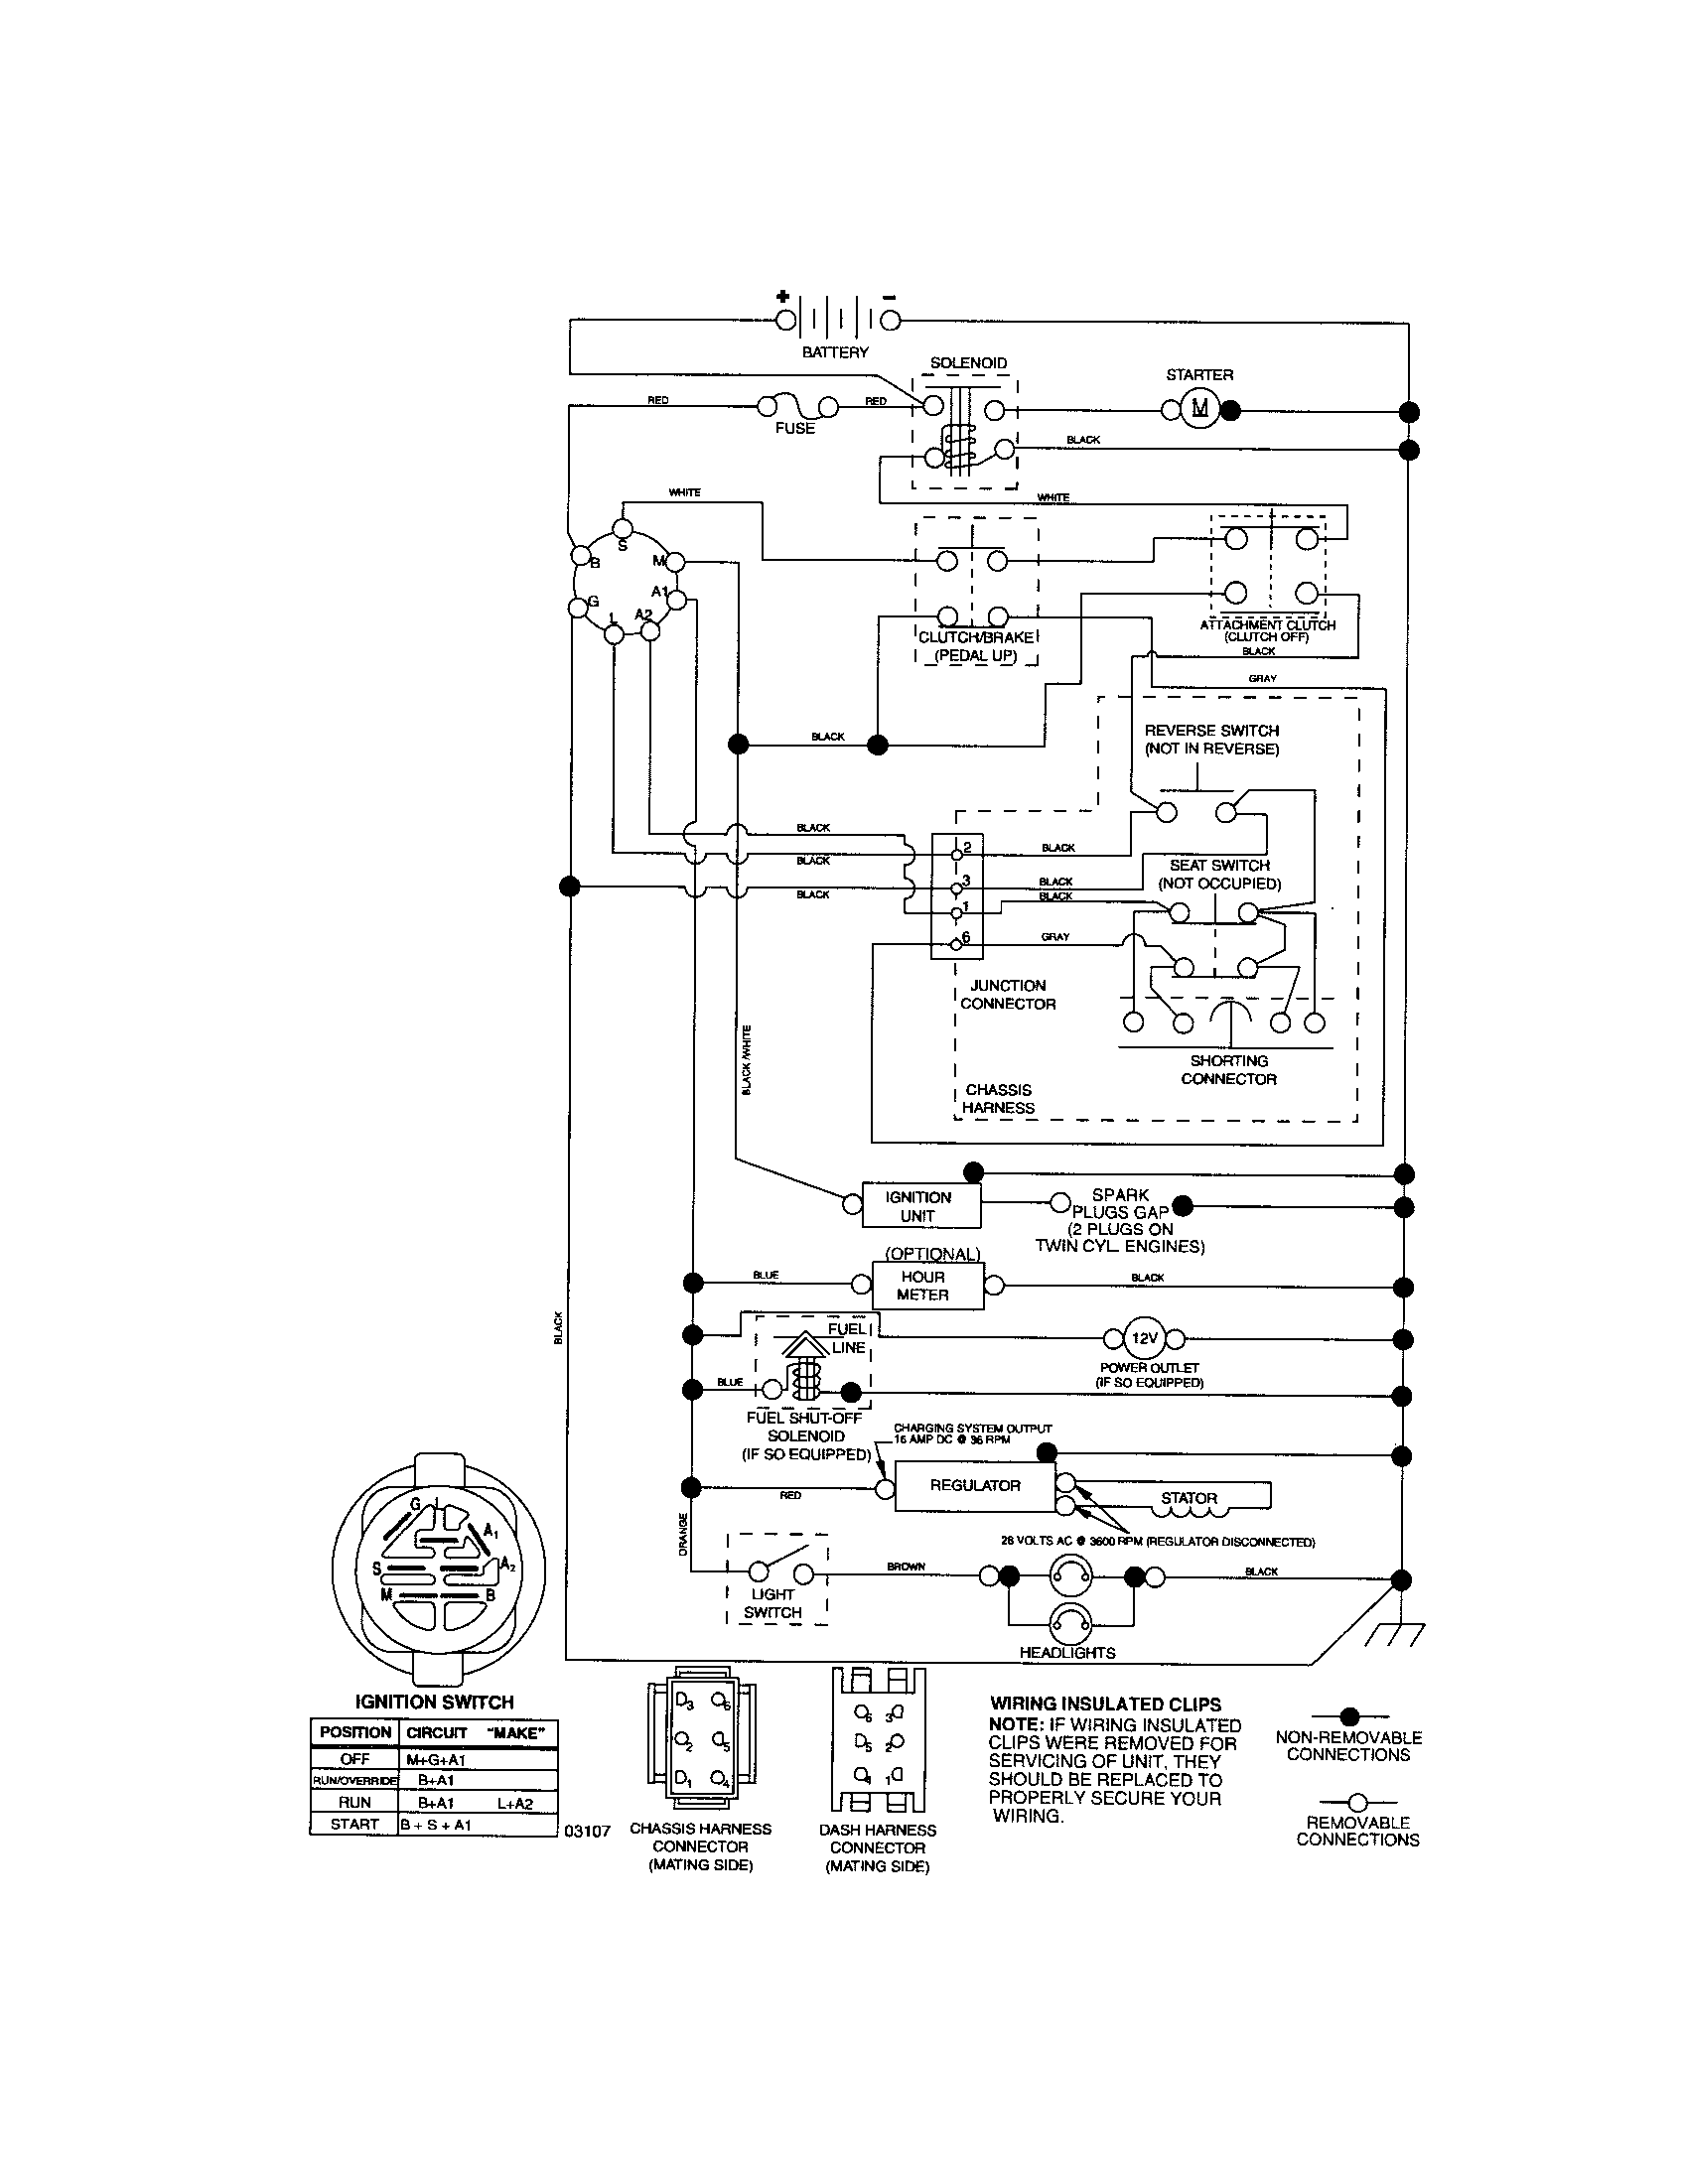 6af5f1447fd13c8443376822ddc1e105 craftsman riding mower electrical diagram wiring diagram Ford Spark Plug Wiring Diagram at gsmx.co